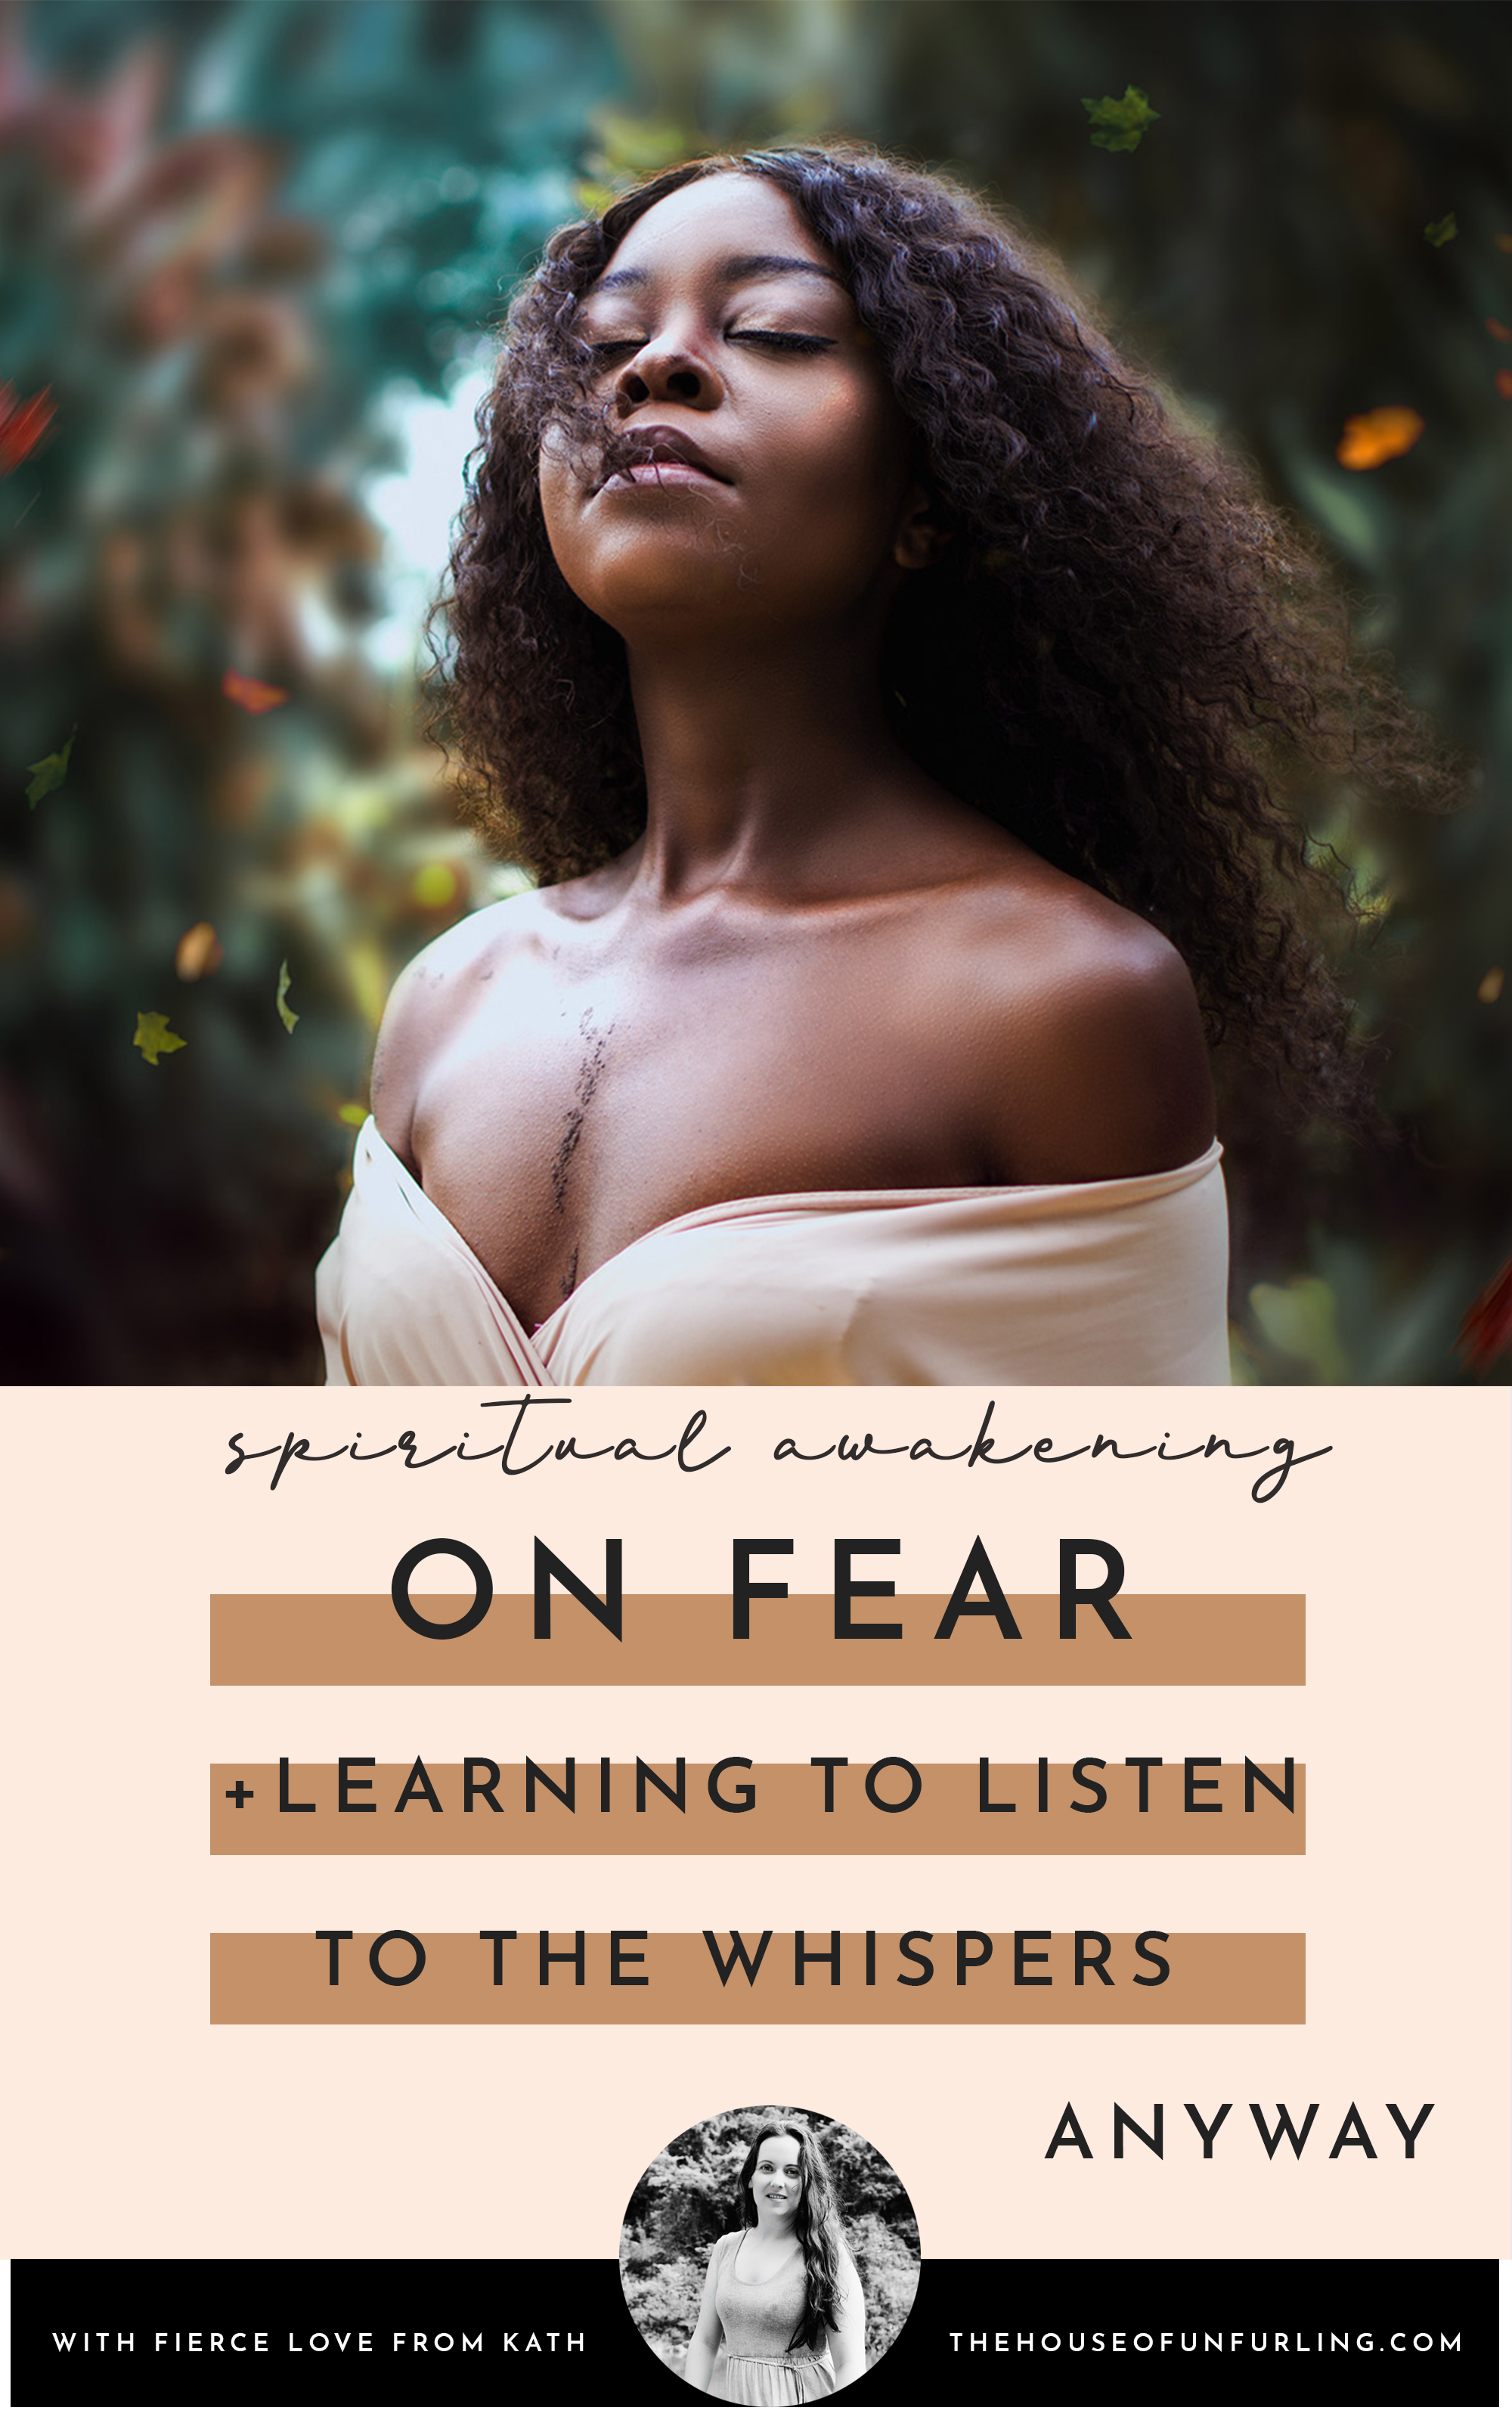 CLICK THROUGH TO READ: On fear, and learning to listen to the whispers anyway. From Deepening Into Intuition. With fierce love, Kath - kathleensaelens.com